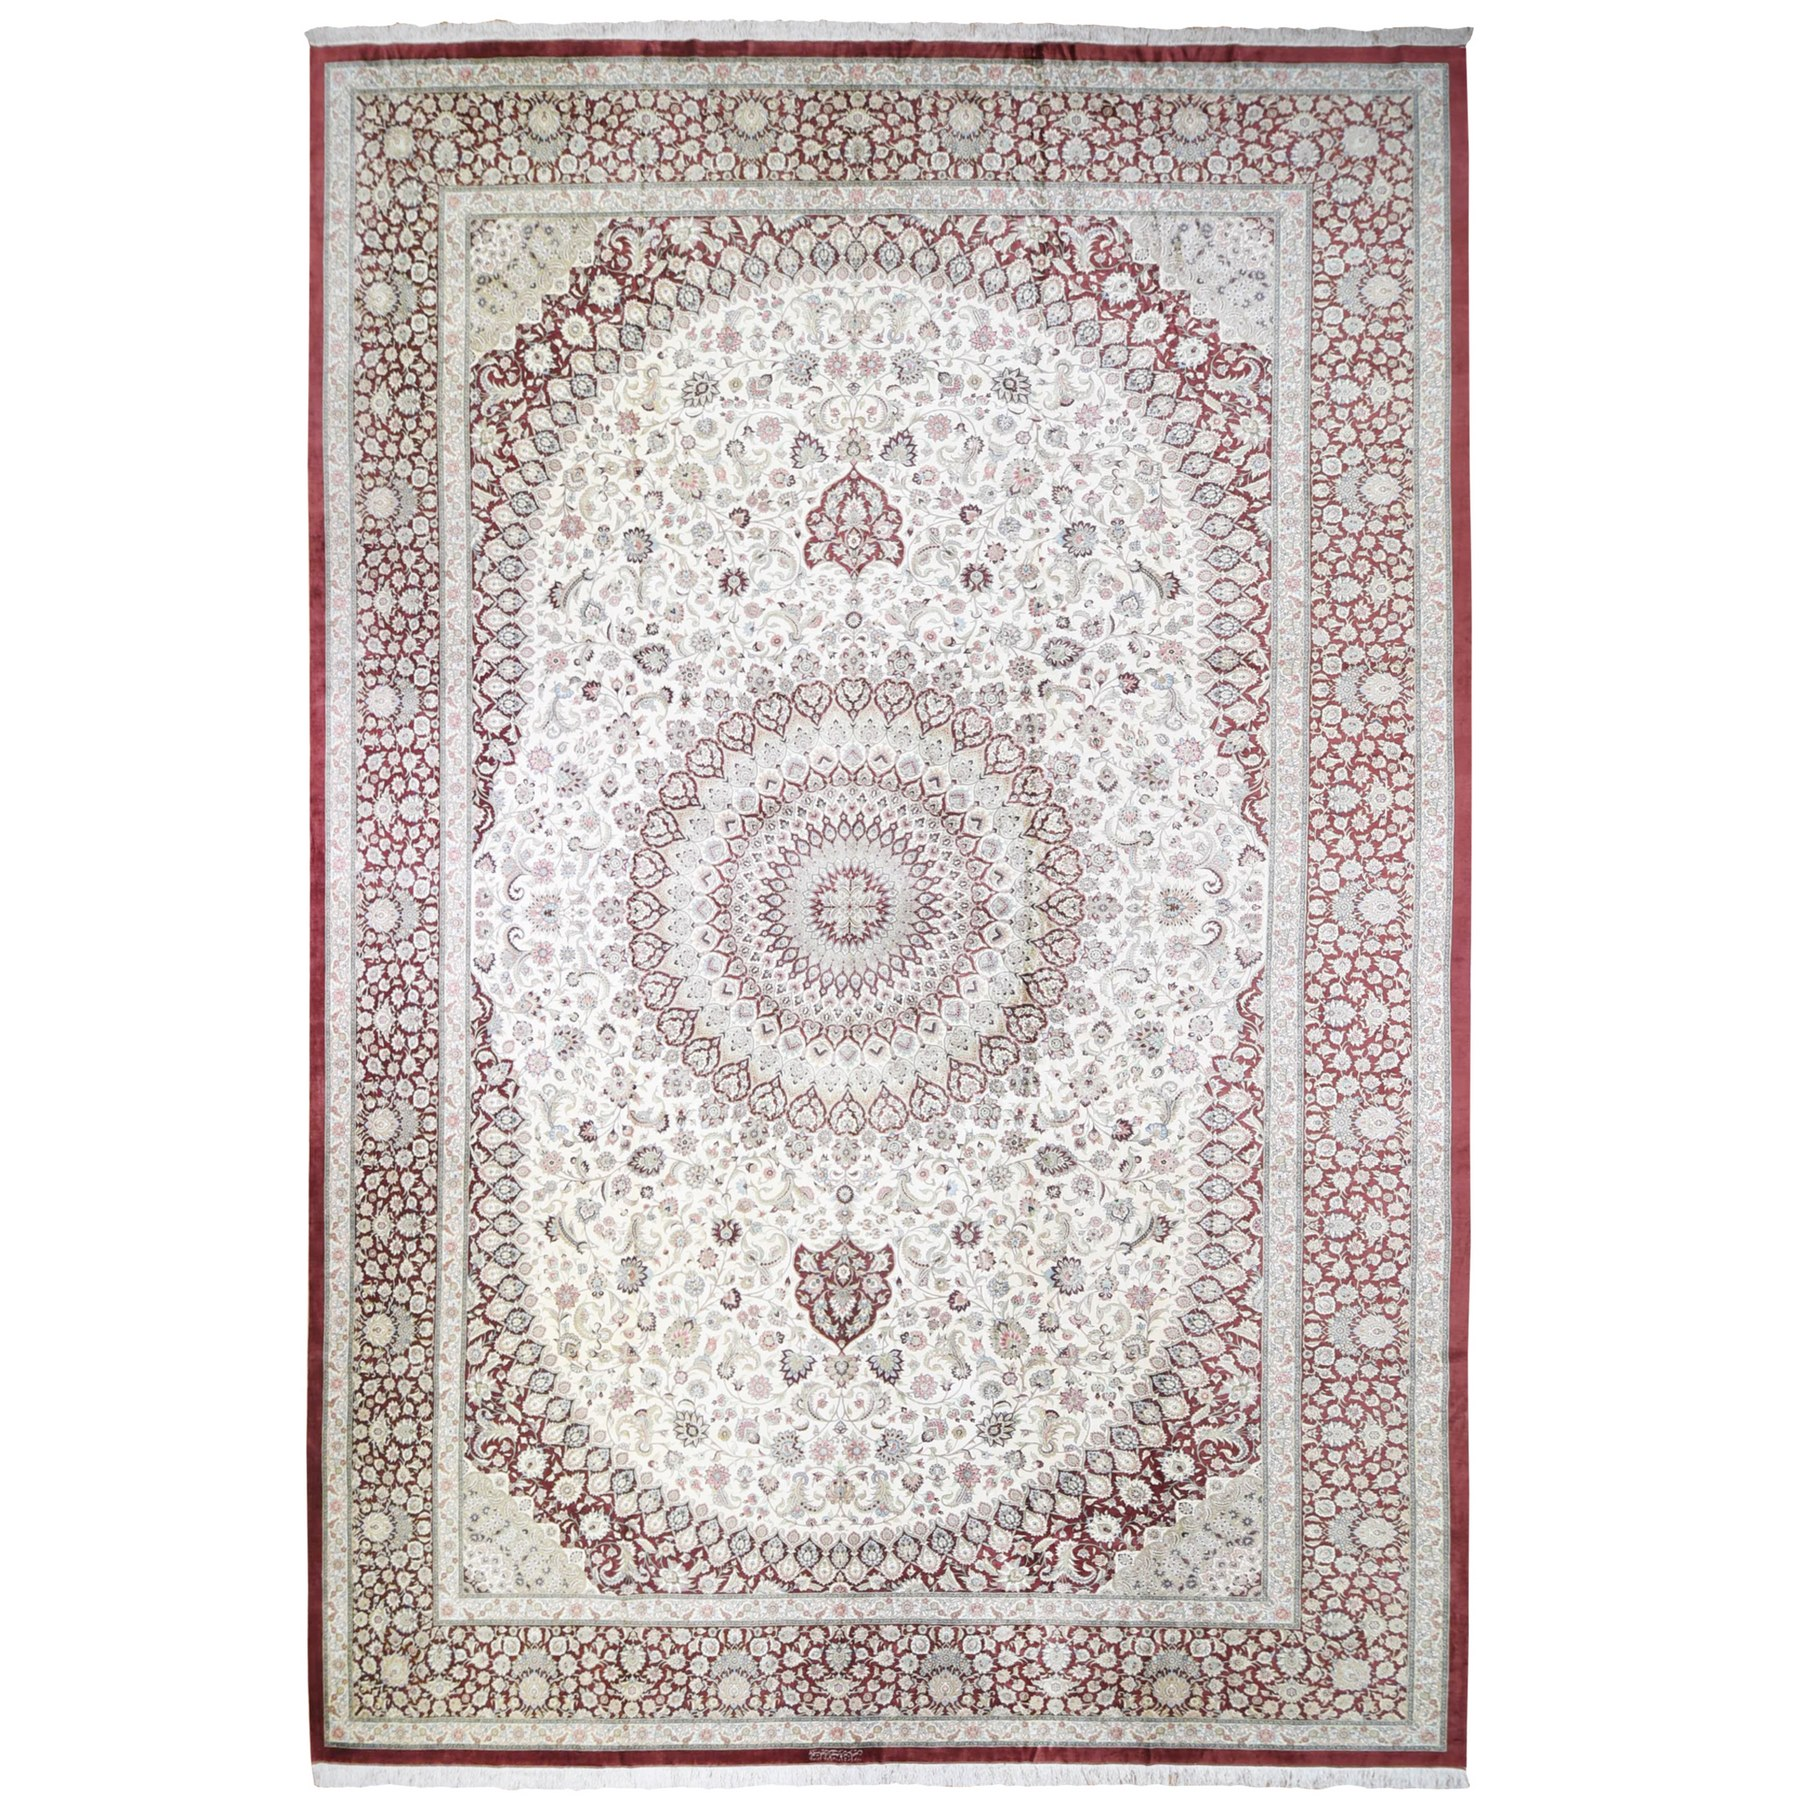 "14'7""x21'4"" Oversized New Persian Qum Signed by Master Weaver Amin 600 KPS Ivory and Cinnamon Red Pure Wool Hand Knotted Oriental Rug"